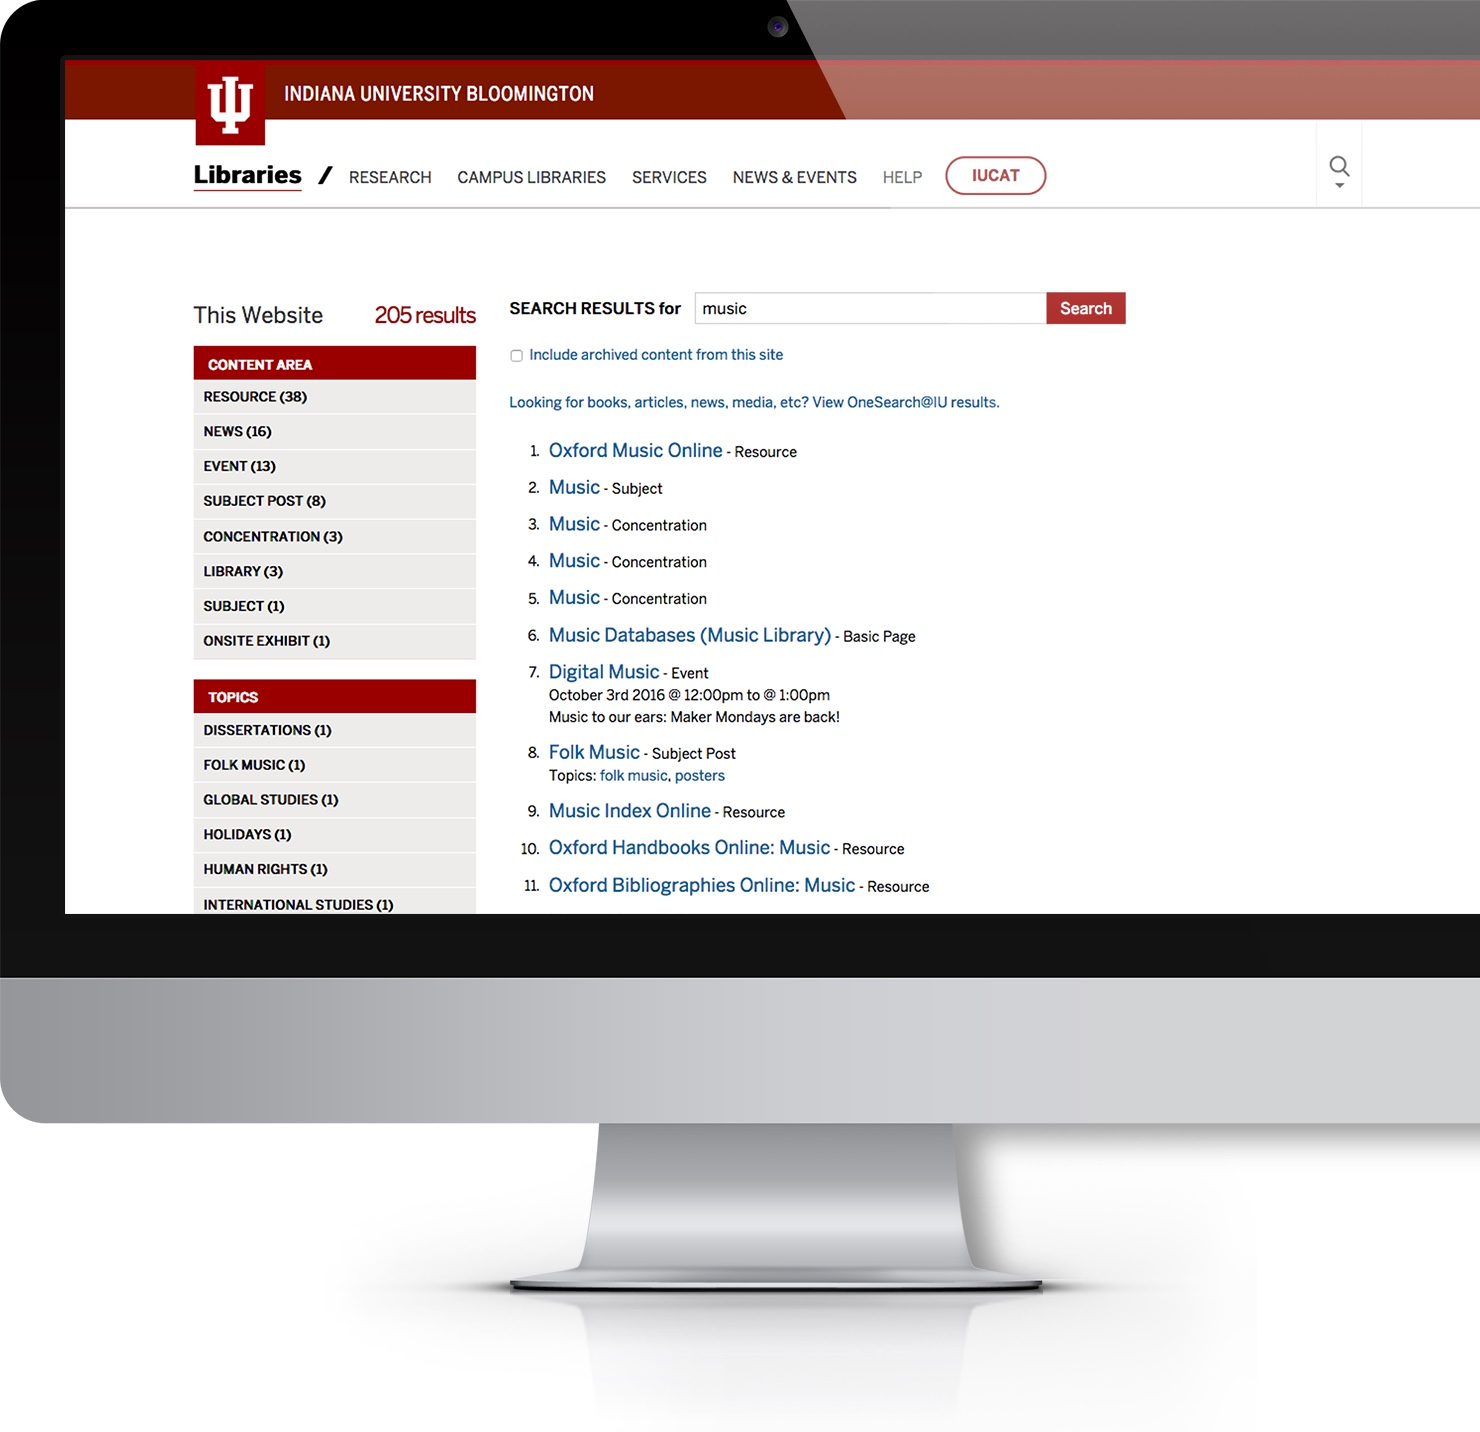 IUL search page on desktop